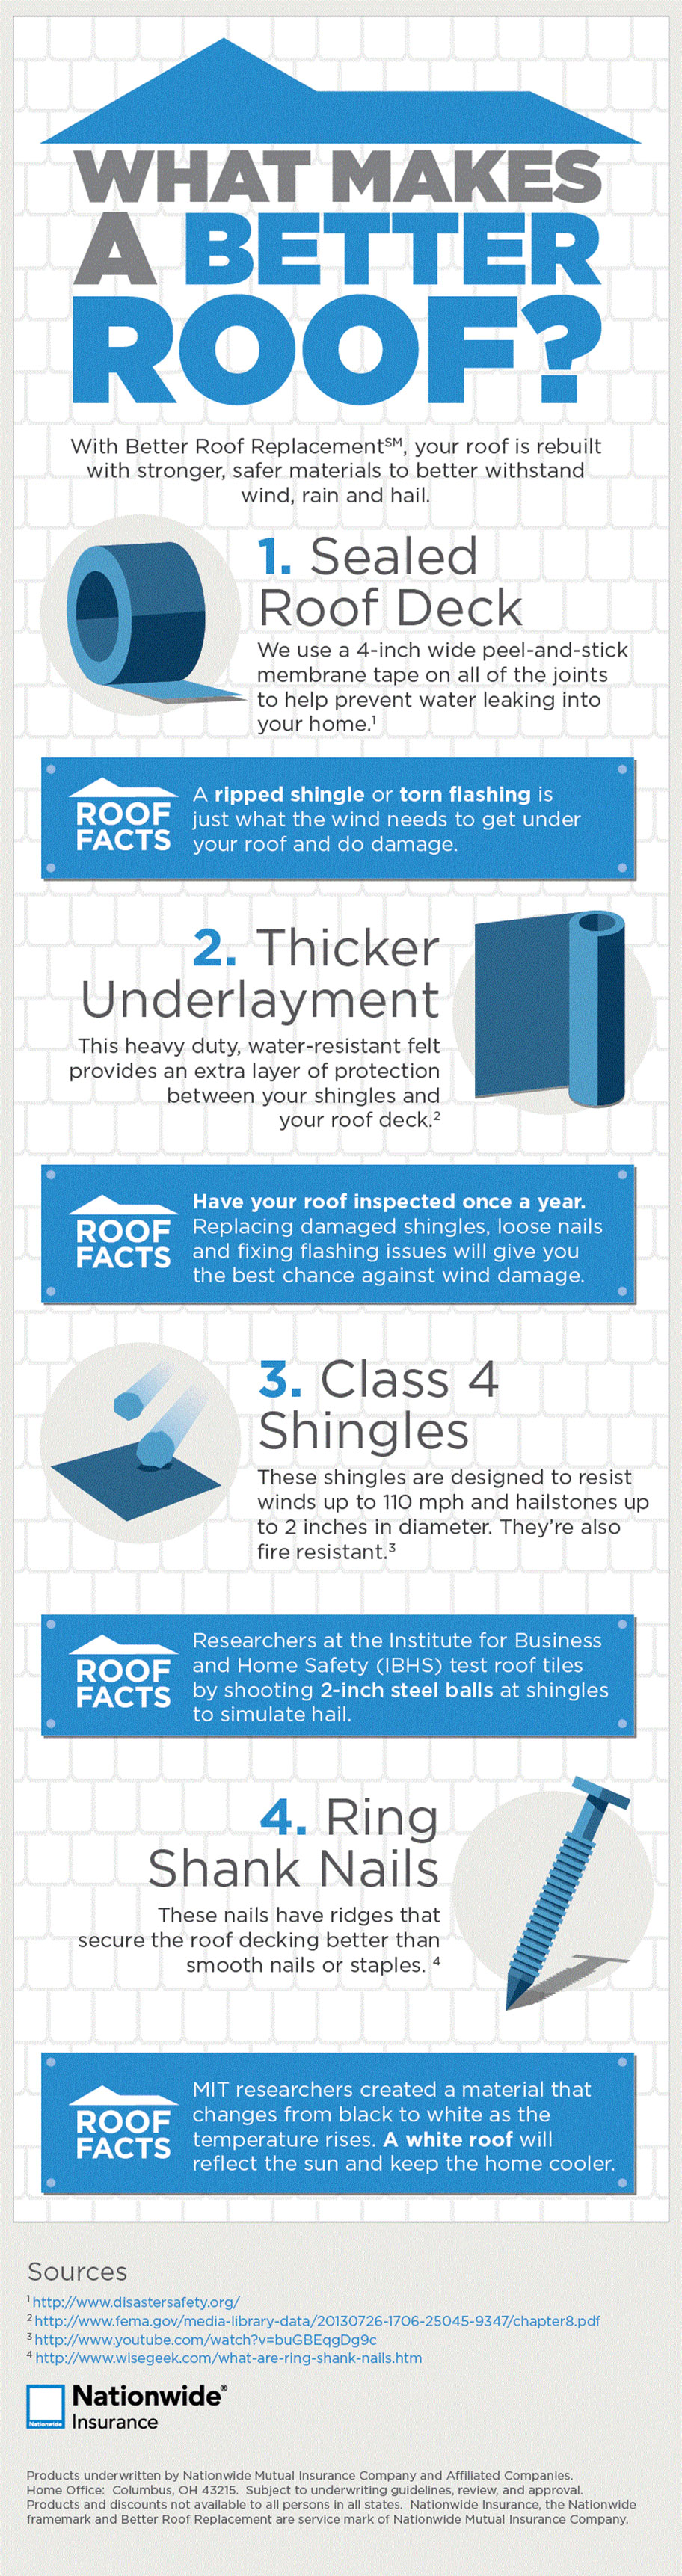 What Makes A Better Roof Infographic Roof Roof Deck How To Make